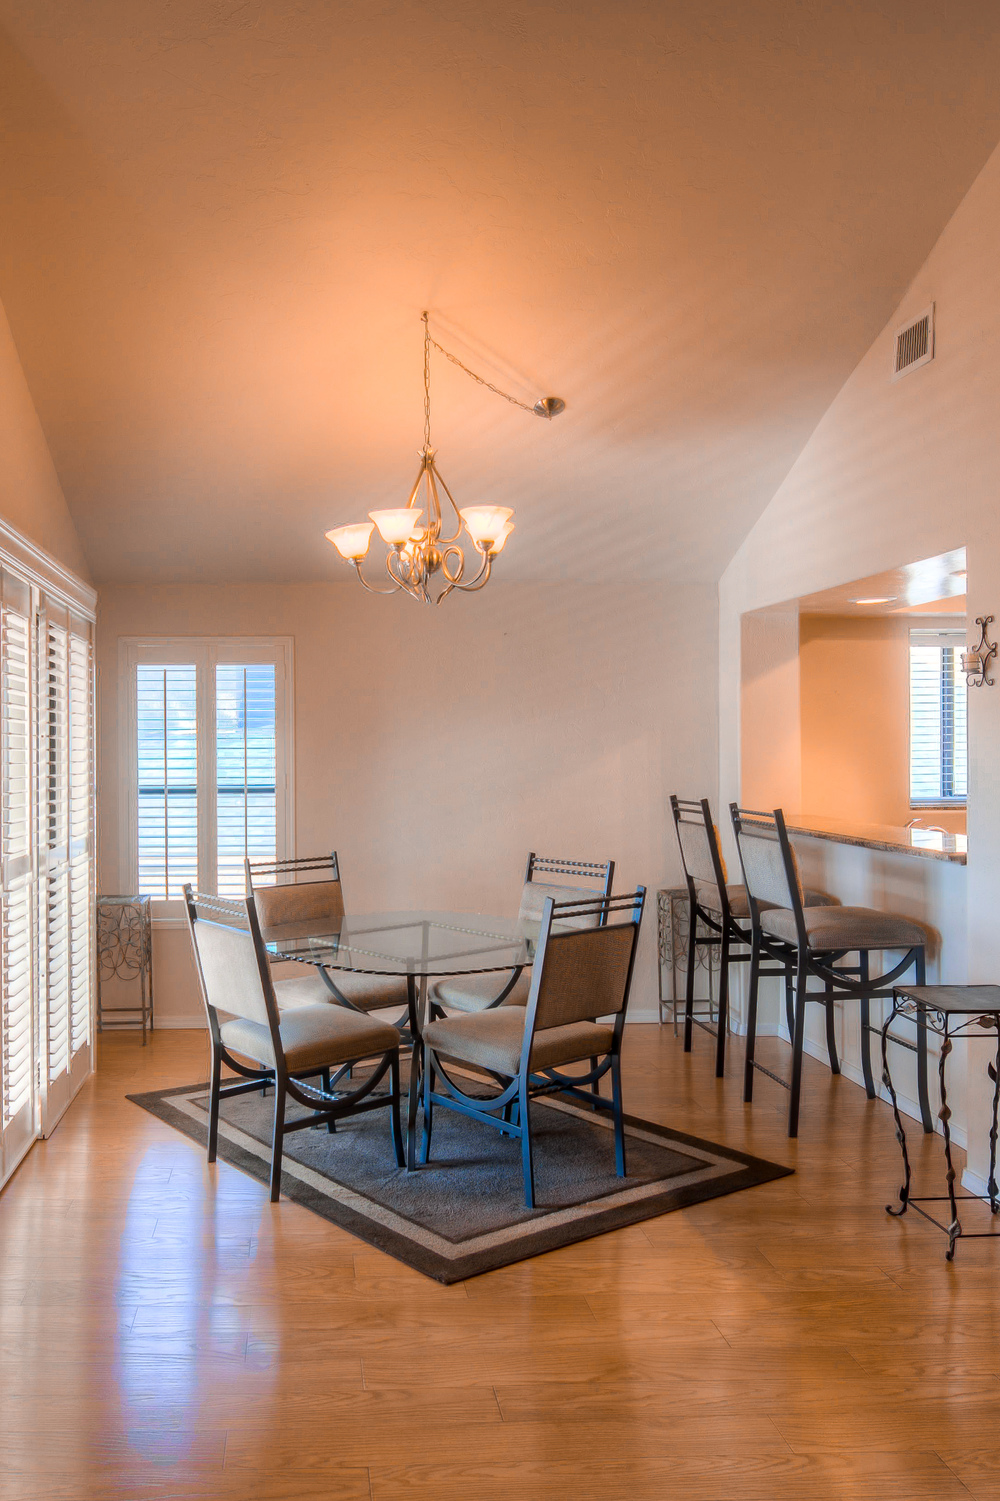 22 Dining Room photo d.jpg